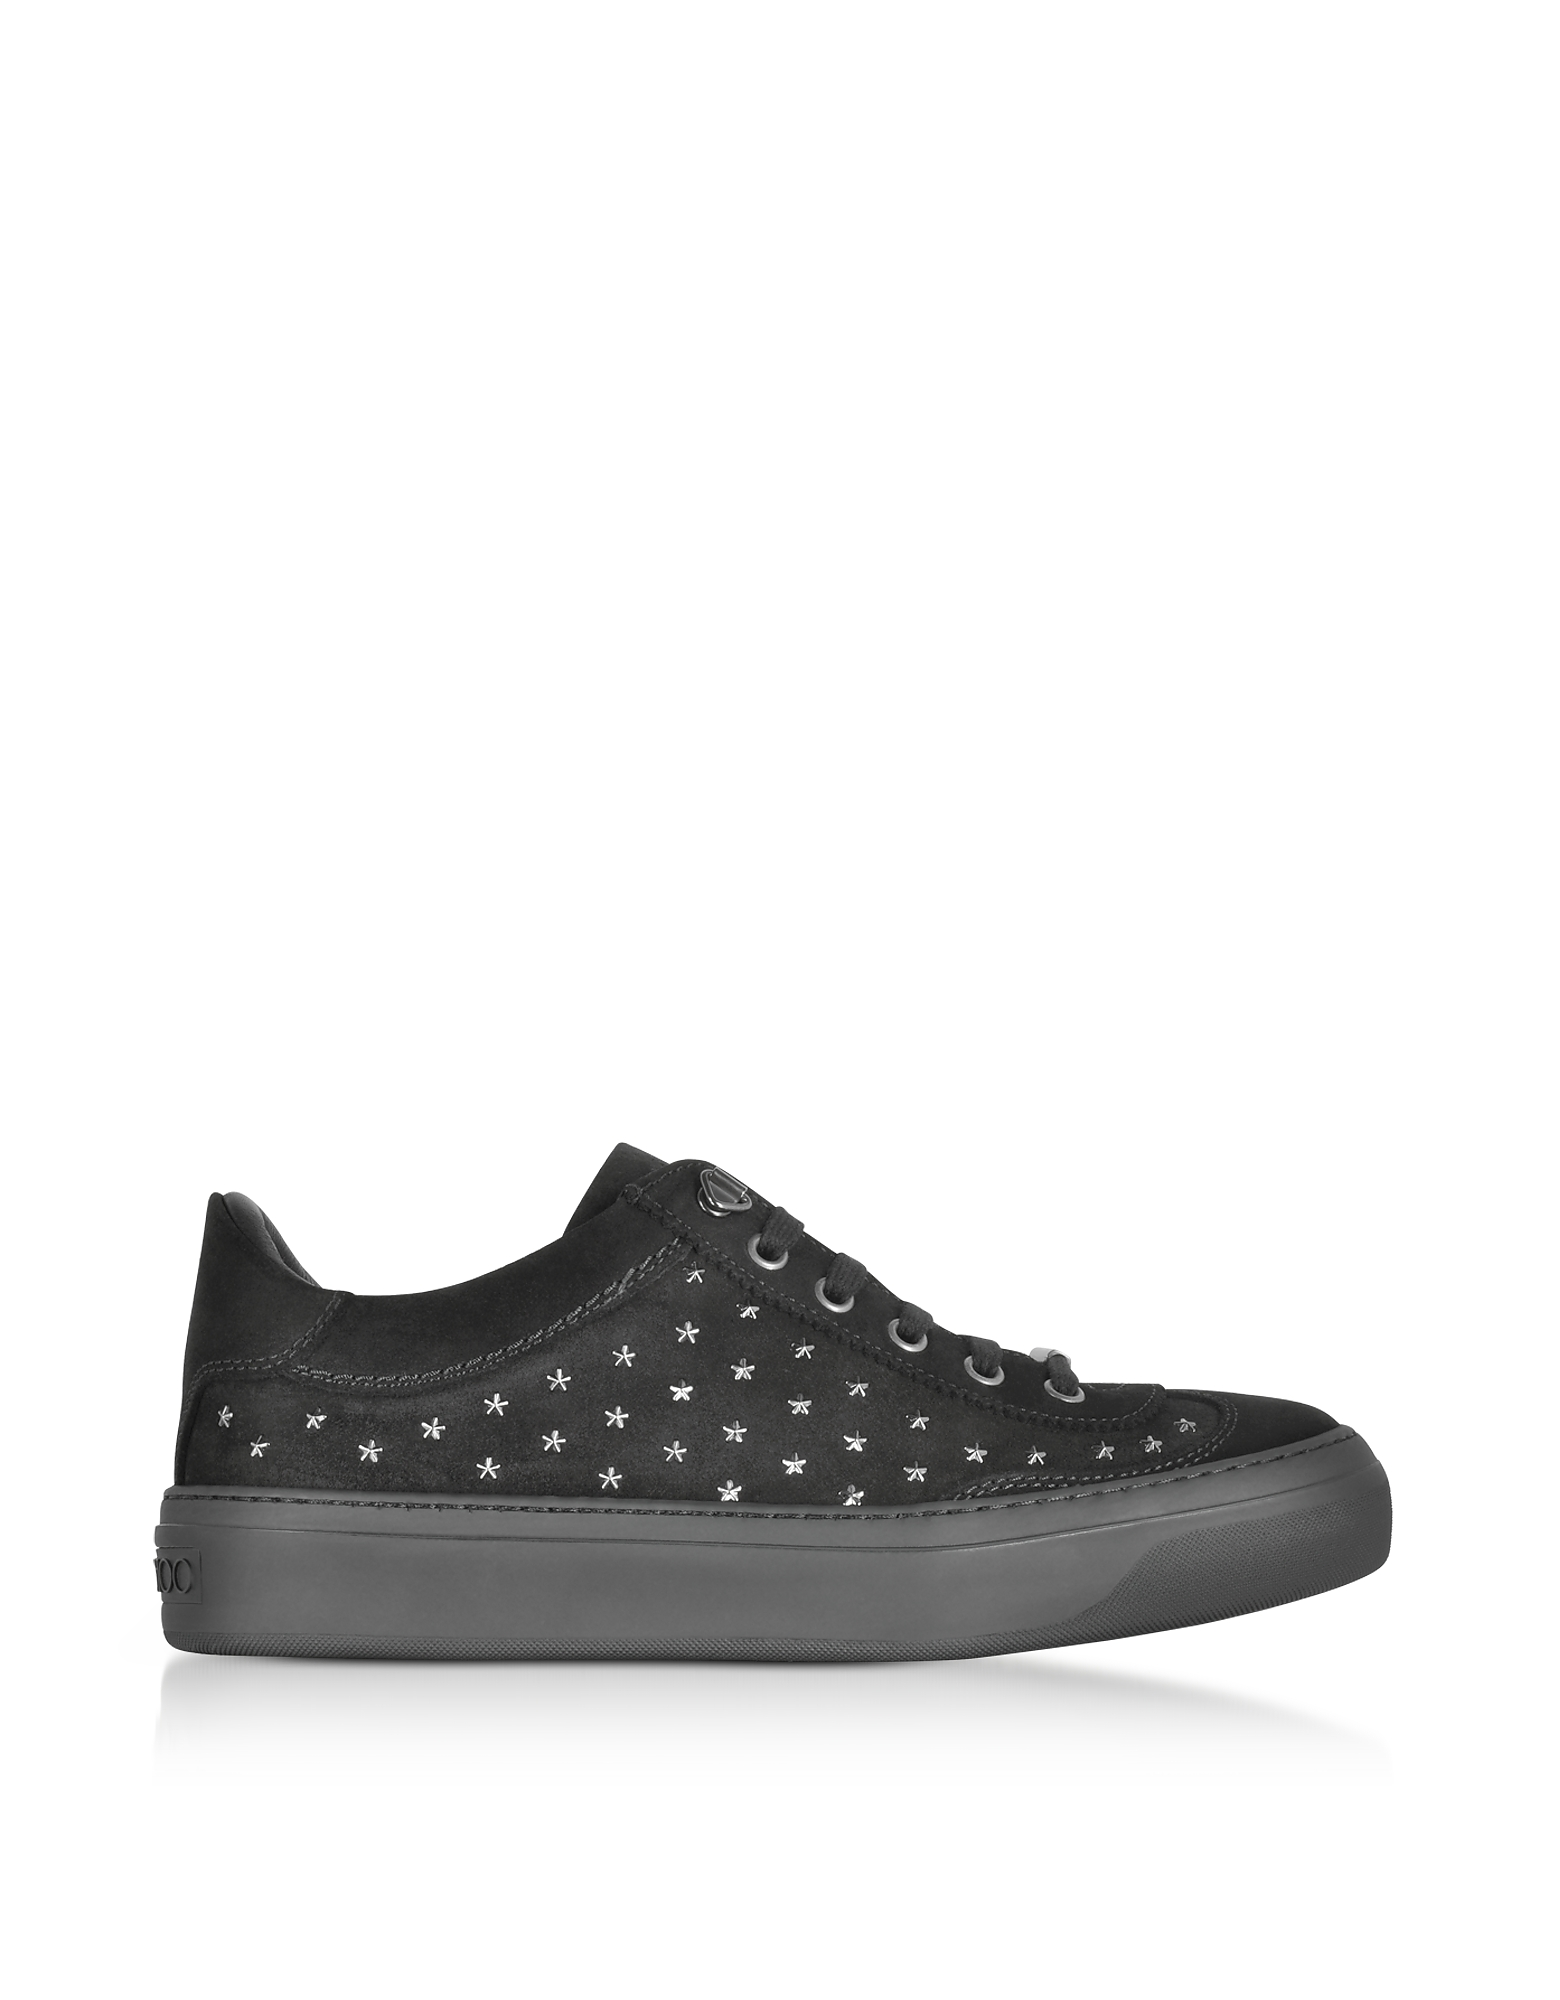 Jimmy Choo Shoes, Ace UMP Black Suede w/Stars Lace up Sneakers